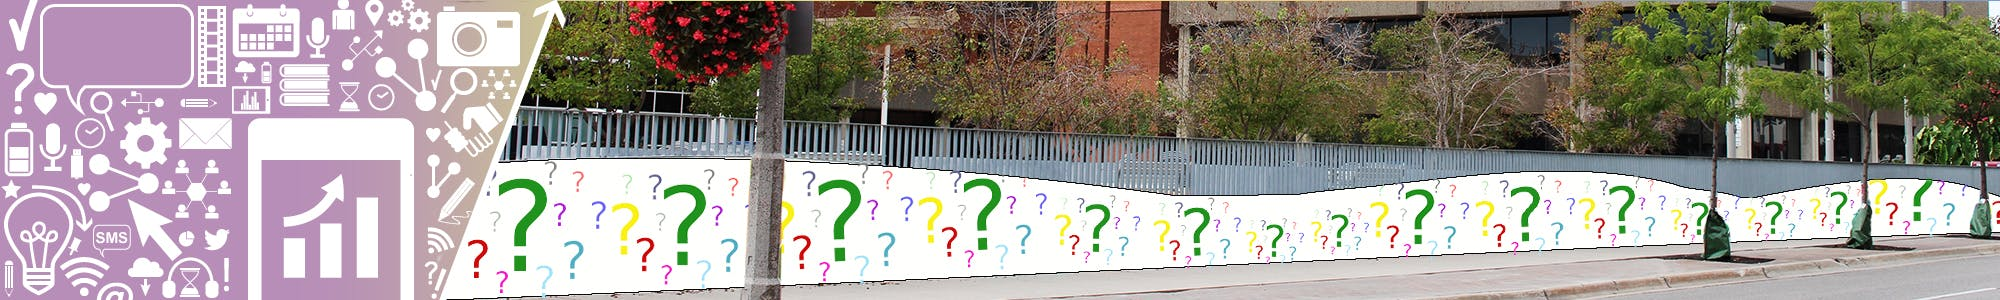 City Hall retaining wall with question marks where current mural is